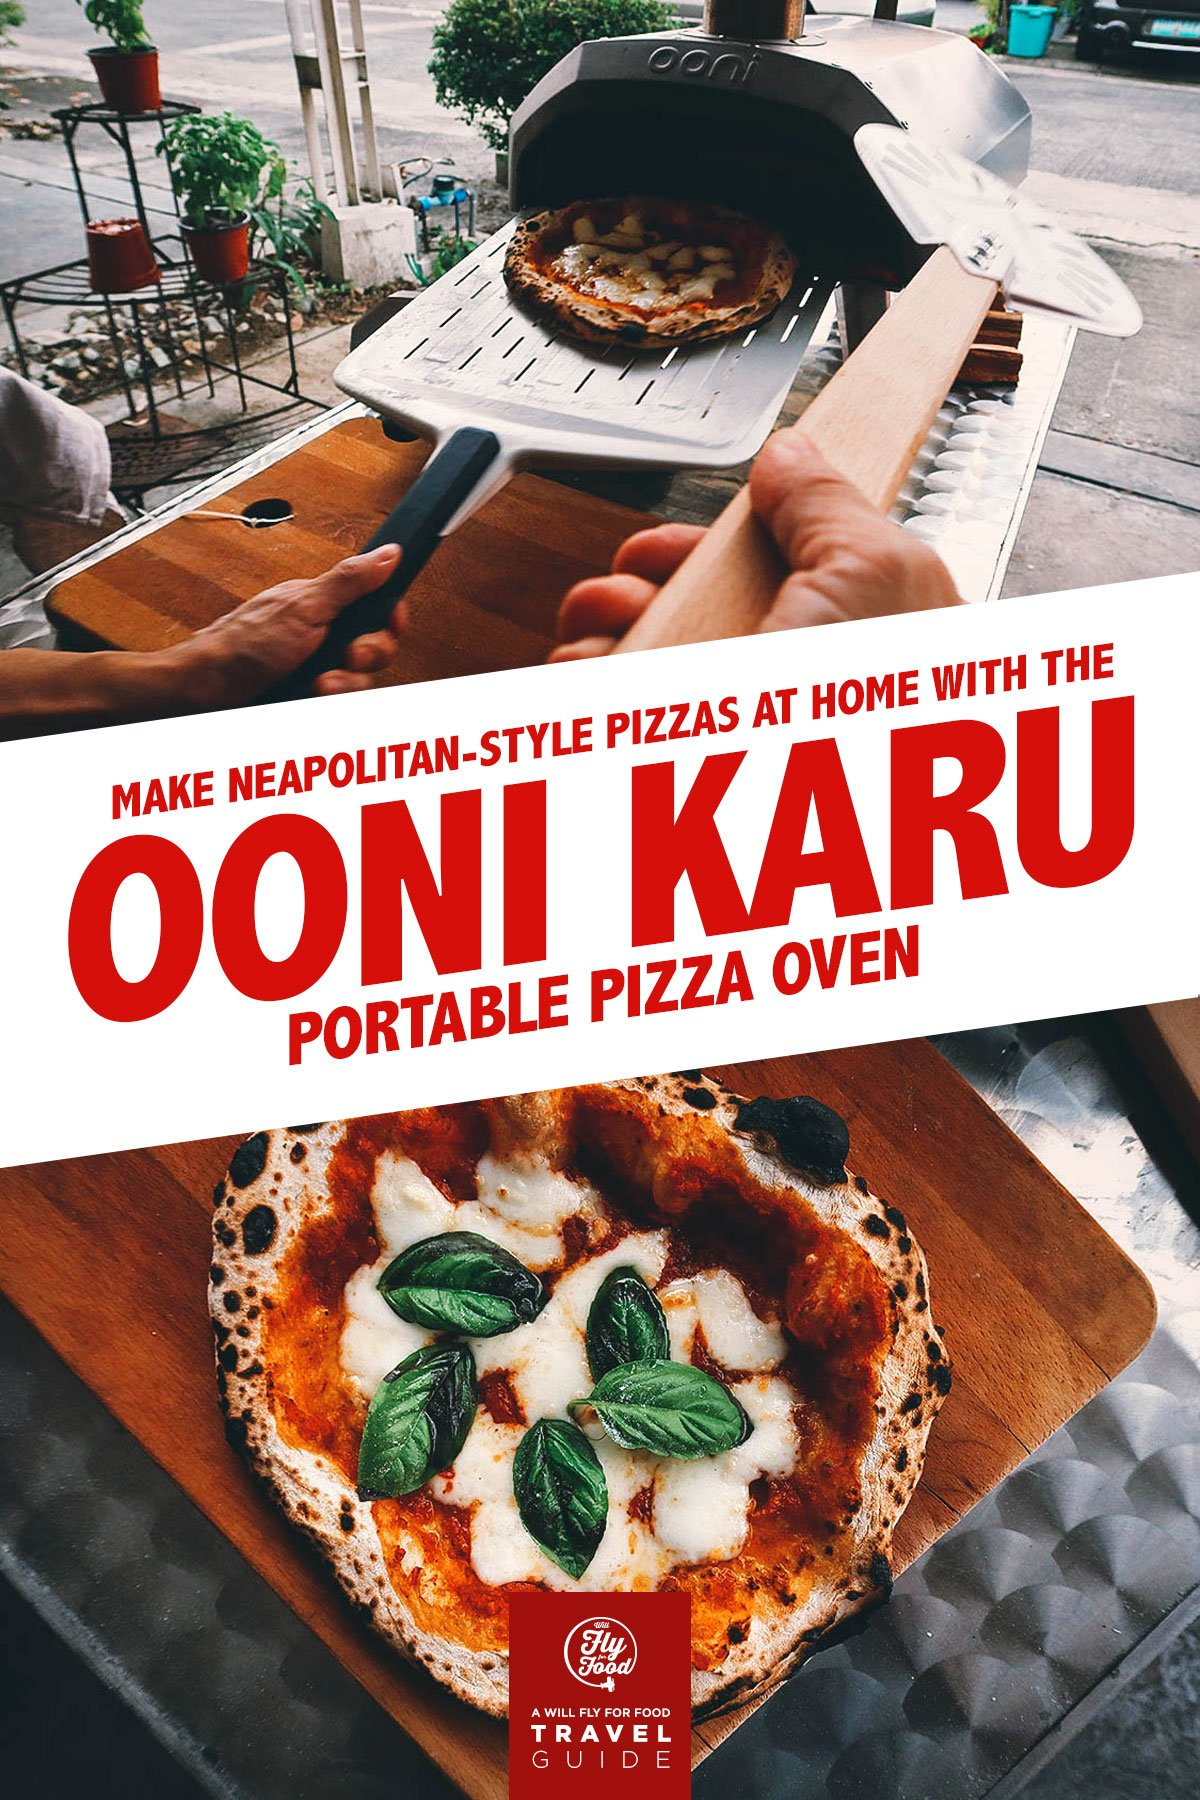 Making Neapolitan-style pizza with an Ooni pizza oven